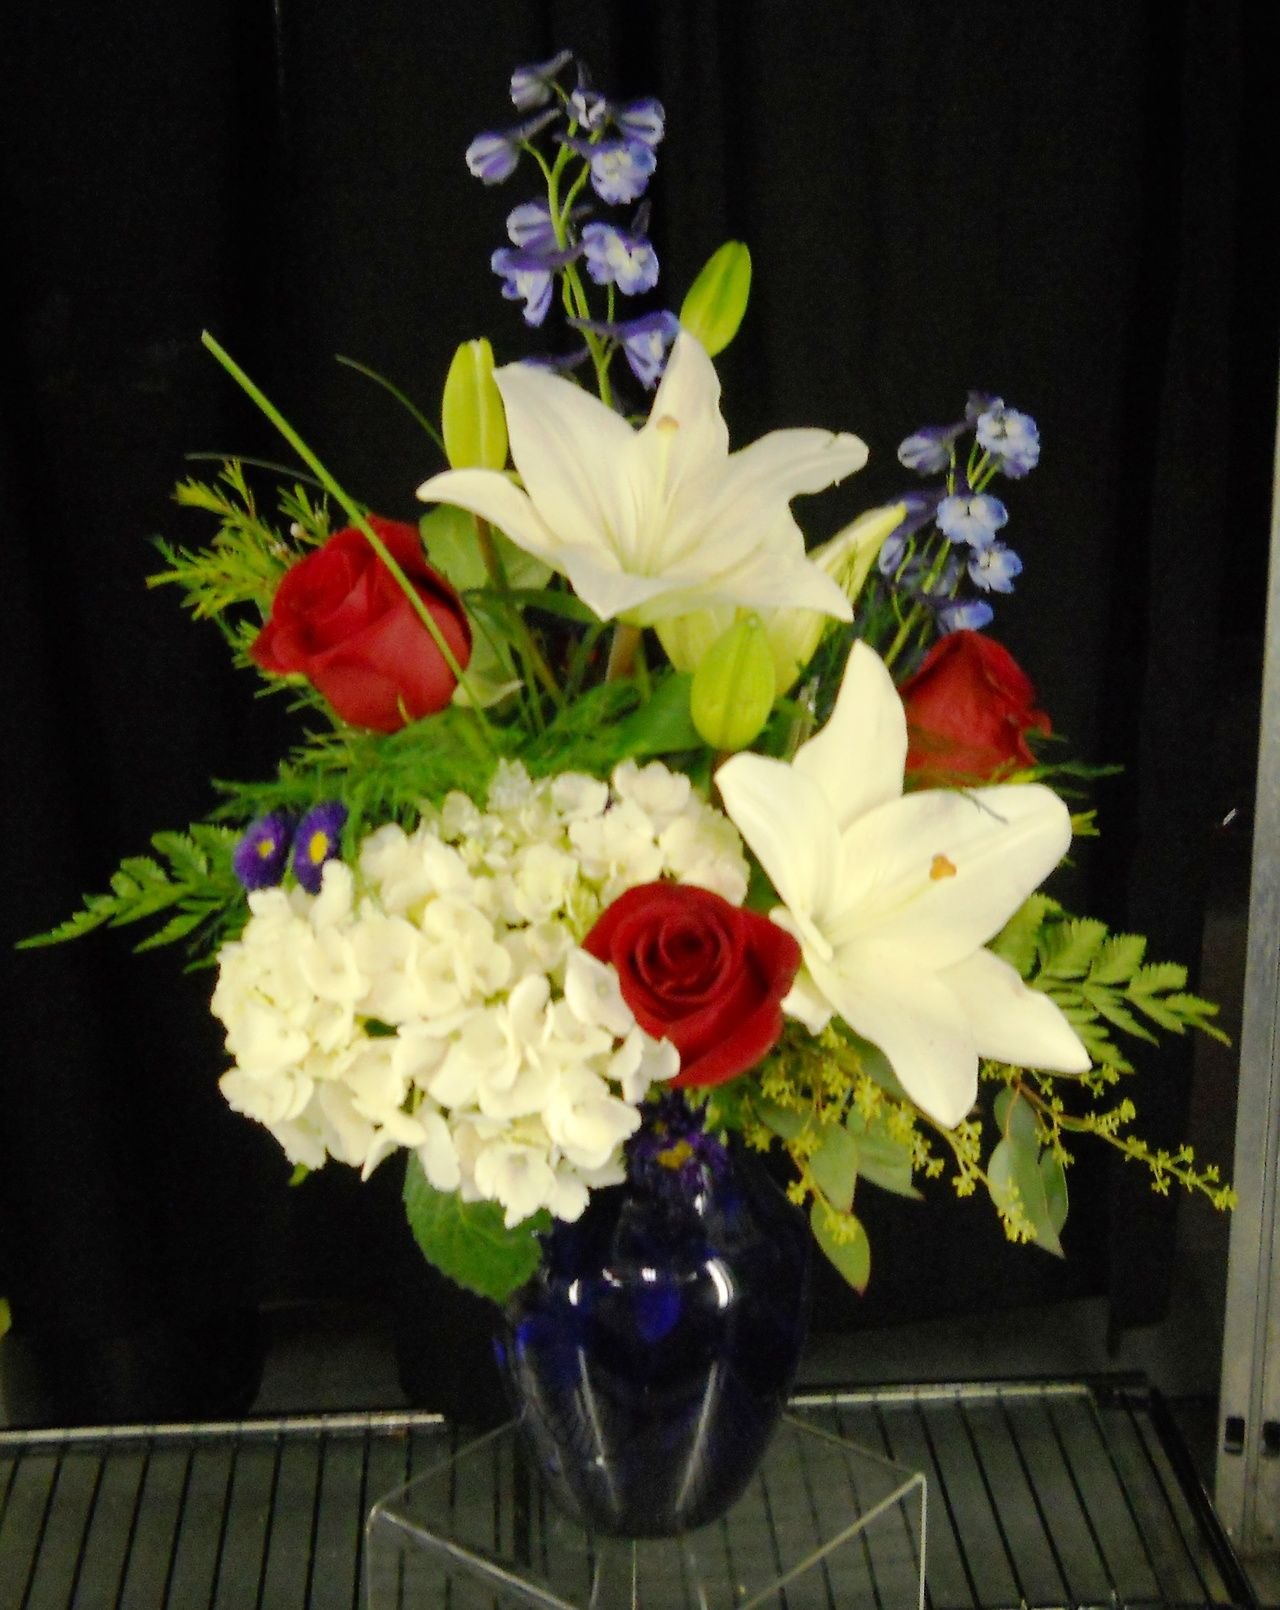 Fourth of july arrangement with white lilies and red roses in blue fourth of july arrangement with white lilies and red roses in blue vase g johnsons floral images mightylinksfo